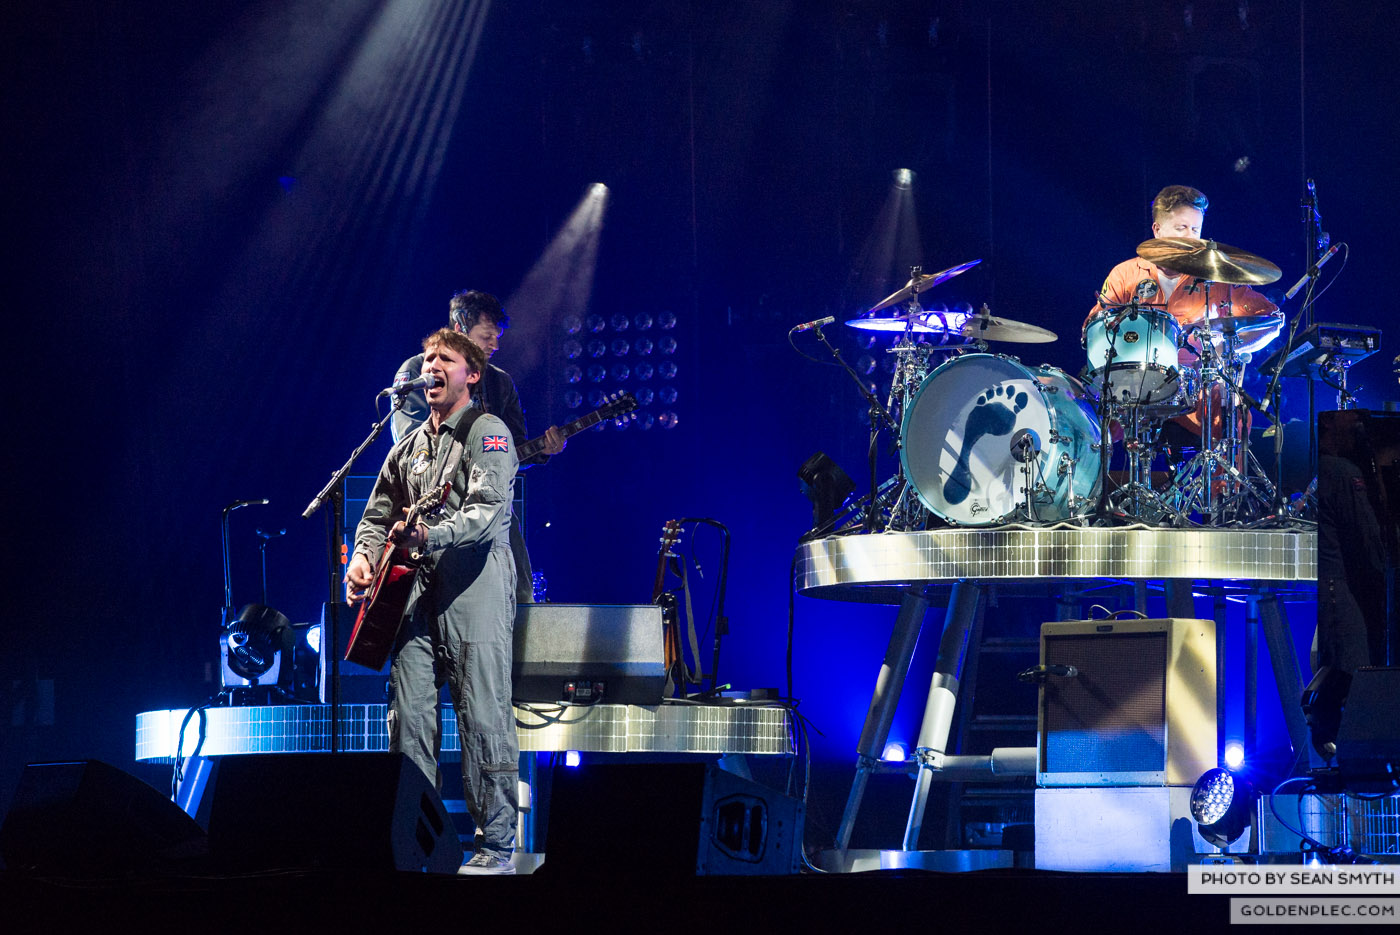 james-blunt-at-3arena-by-sean-smyth-20-11-14-28-of-29